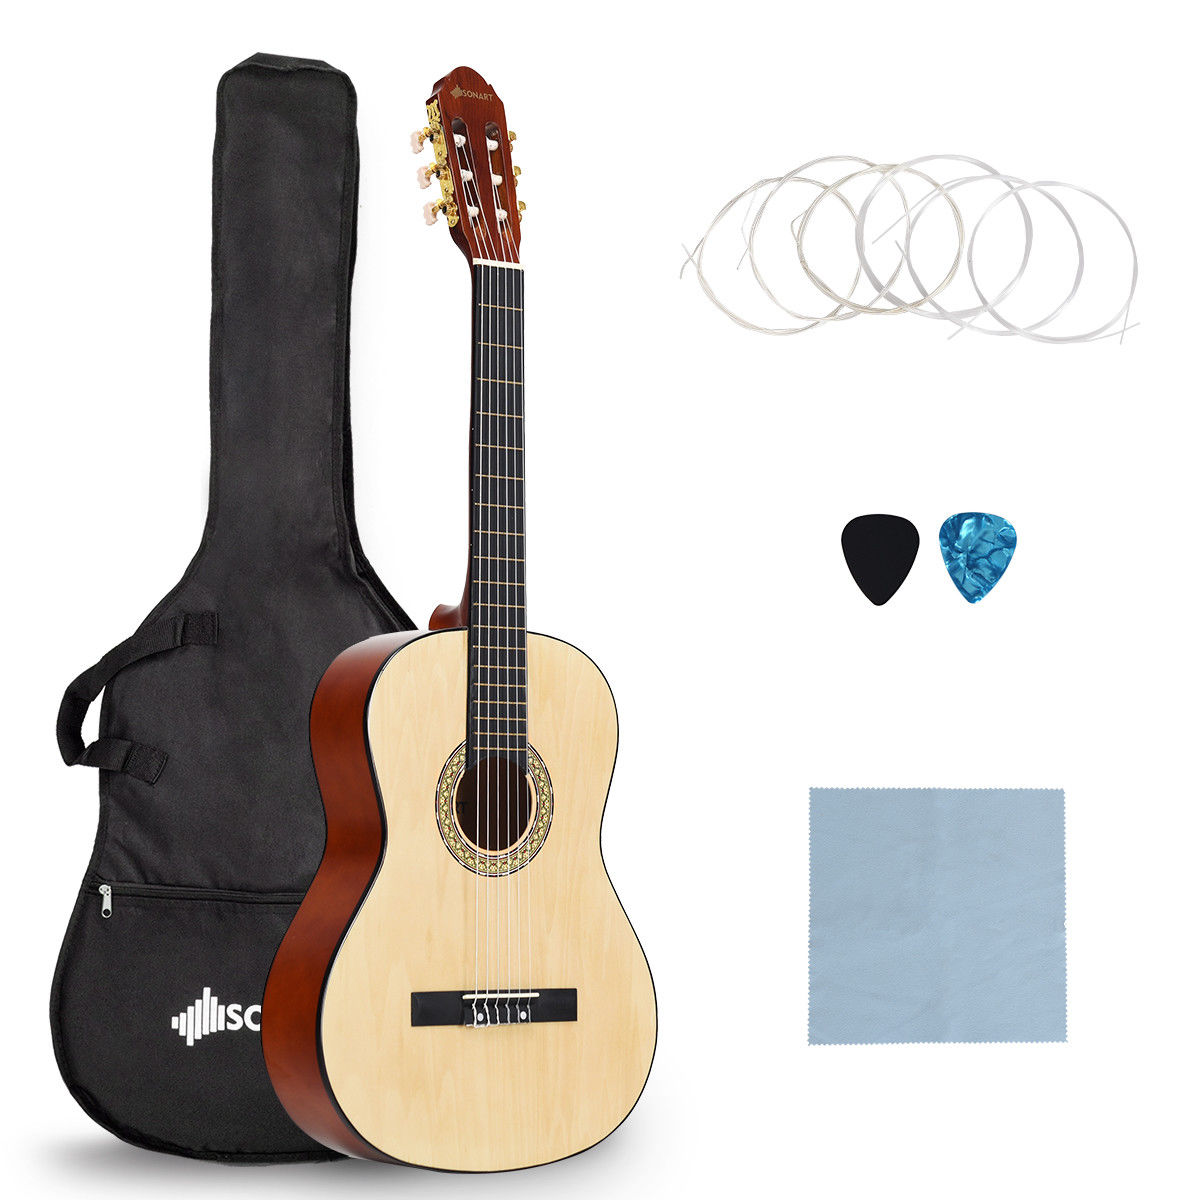 Sonart 39'' Full Size Classical Guitar 10 String w/Bag Pick Strings Cleaning Cloth